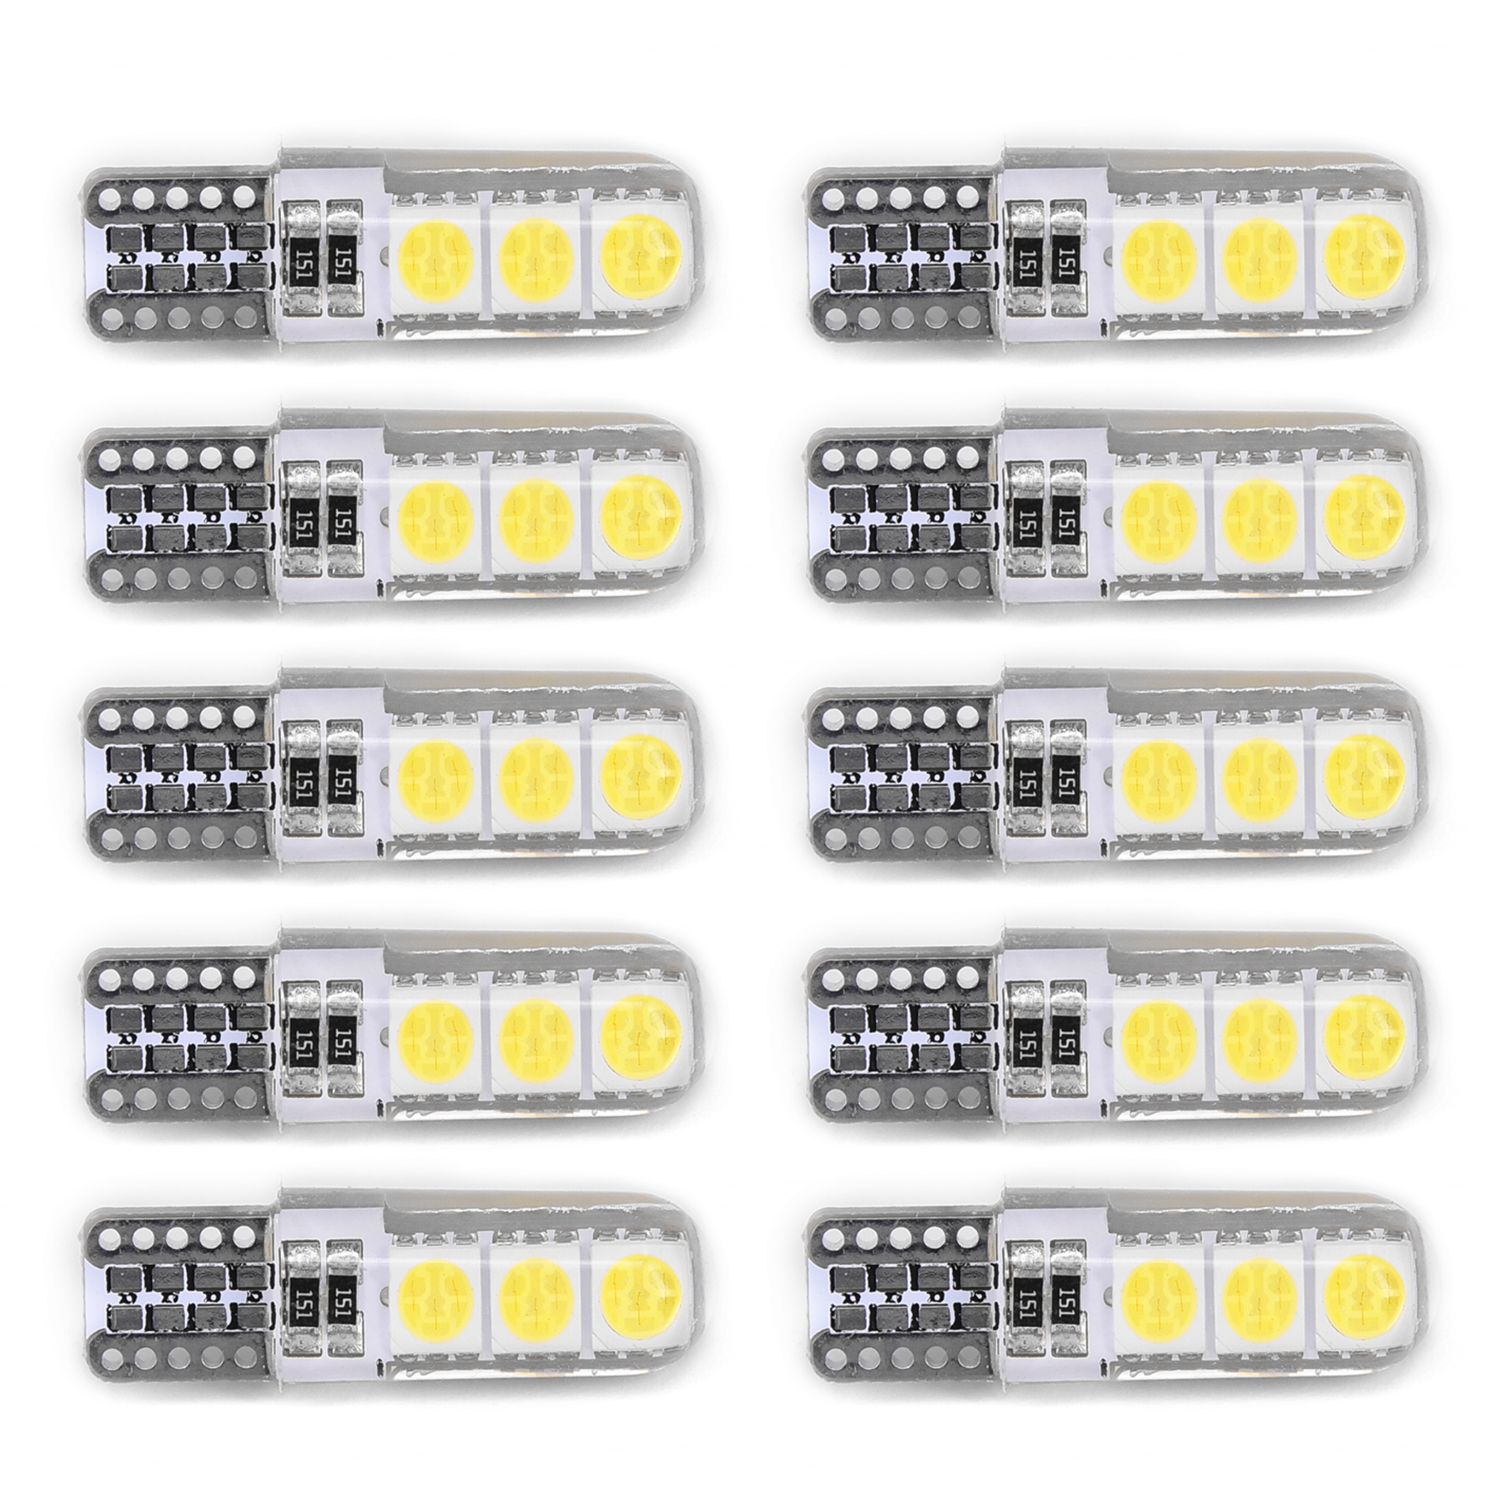 Hot Sale 10pcs T10 194 W5W T10-5050-6SMD Silicone Shell Canbus Car LED Side Wedge Lights Brand New And High Quality